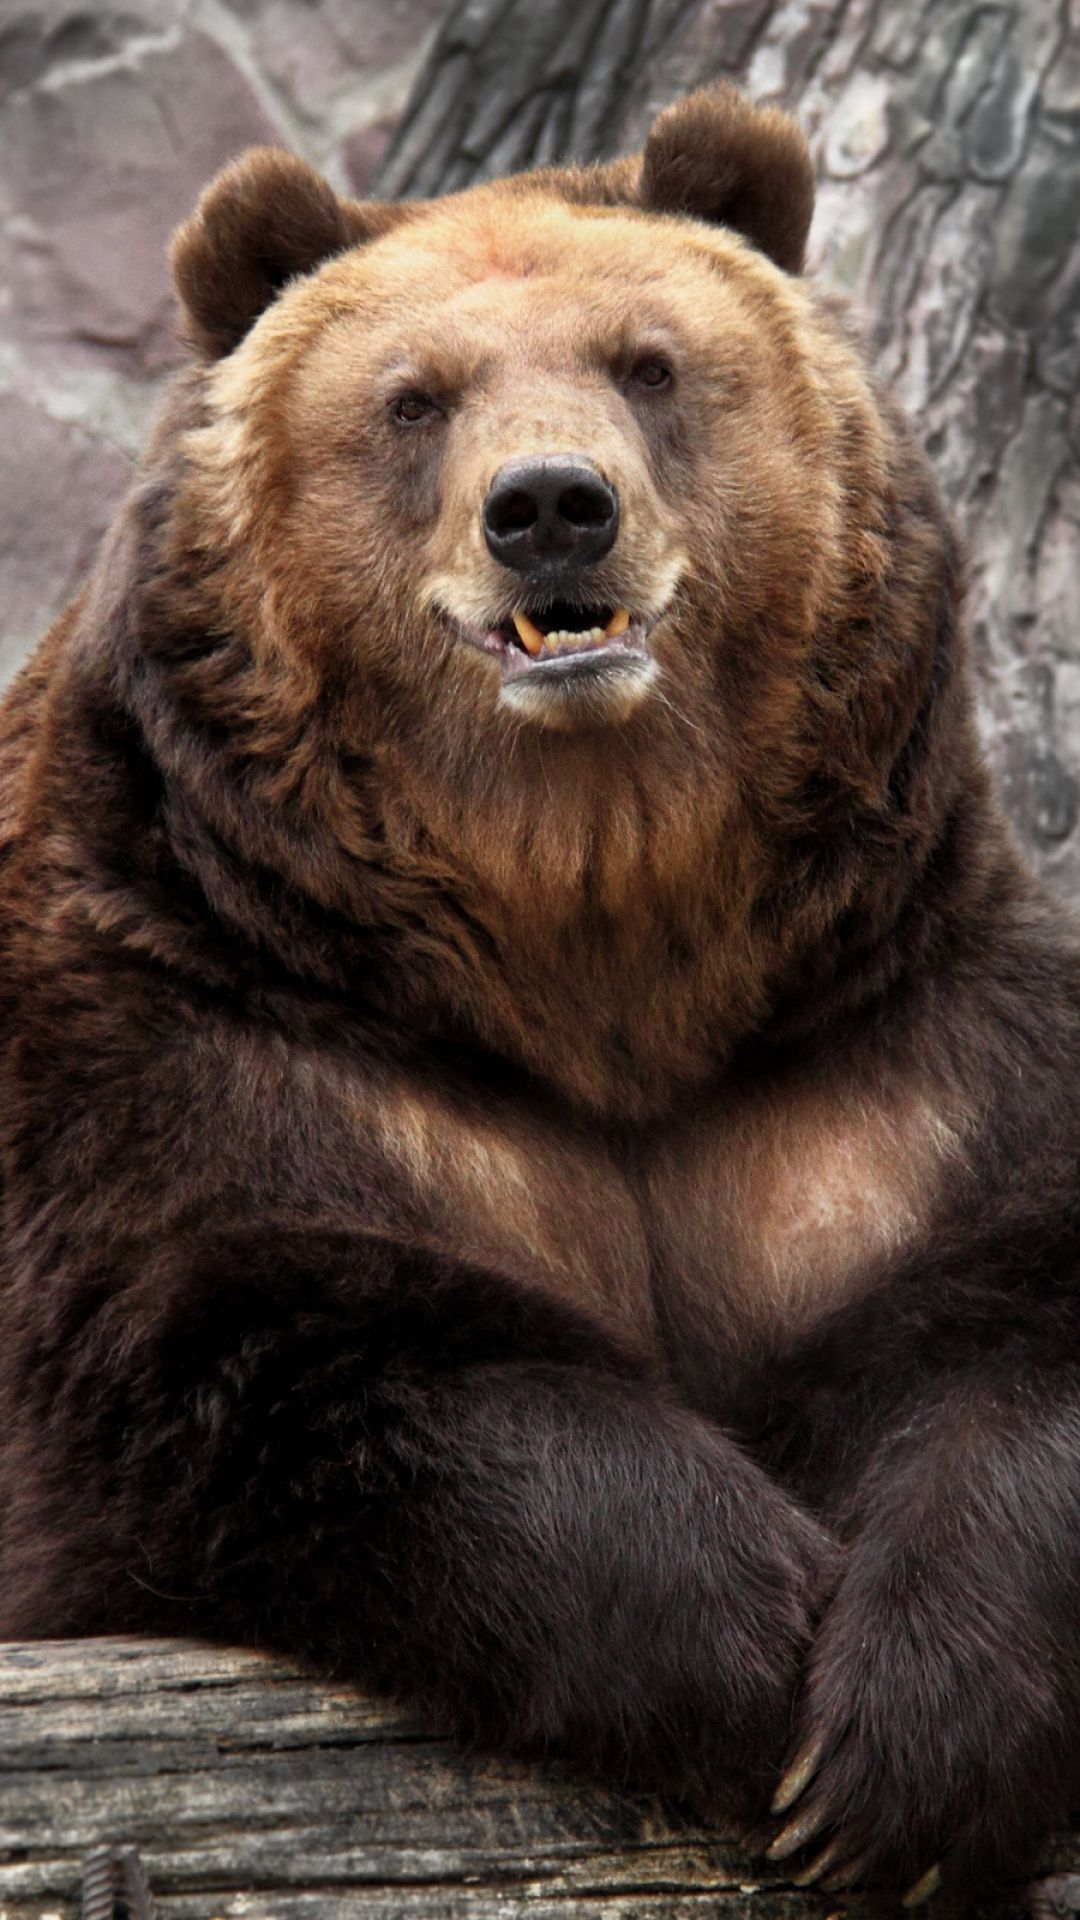 1080x1920 wallpaper bear, zoo, nature, reserve, muzzle | awwww